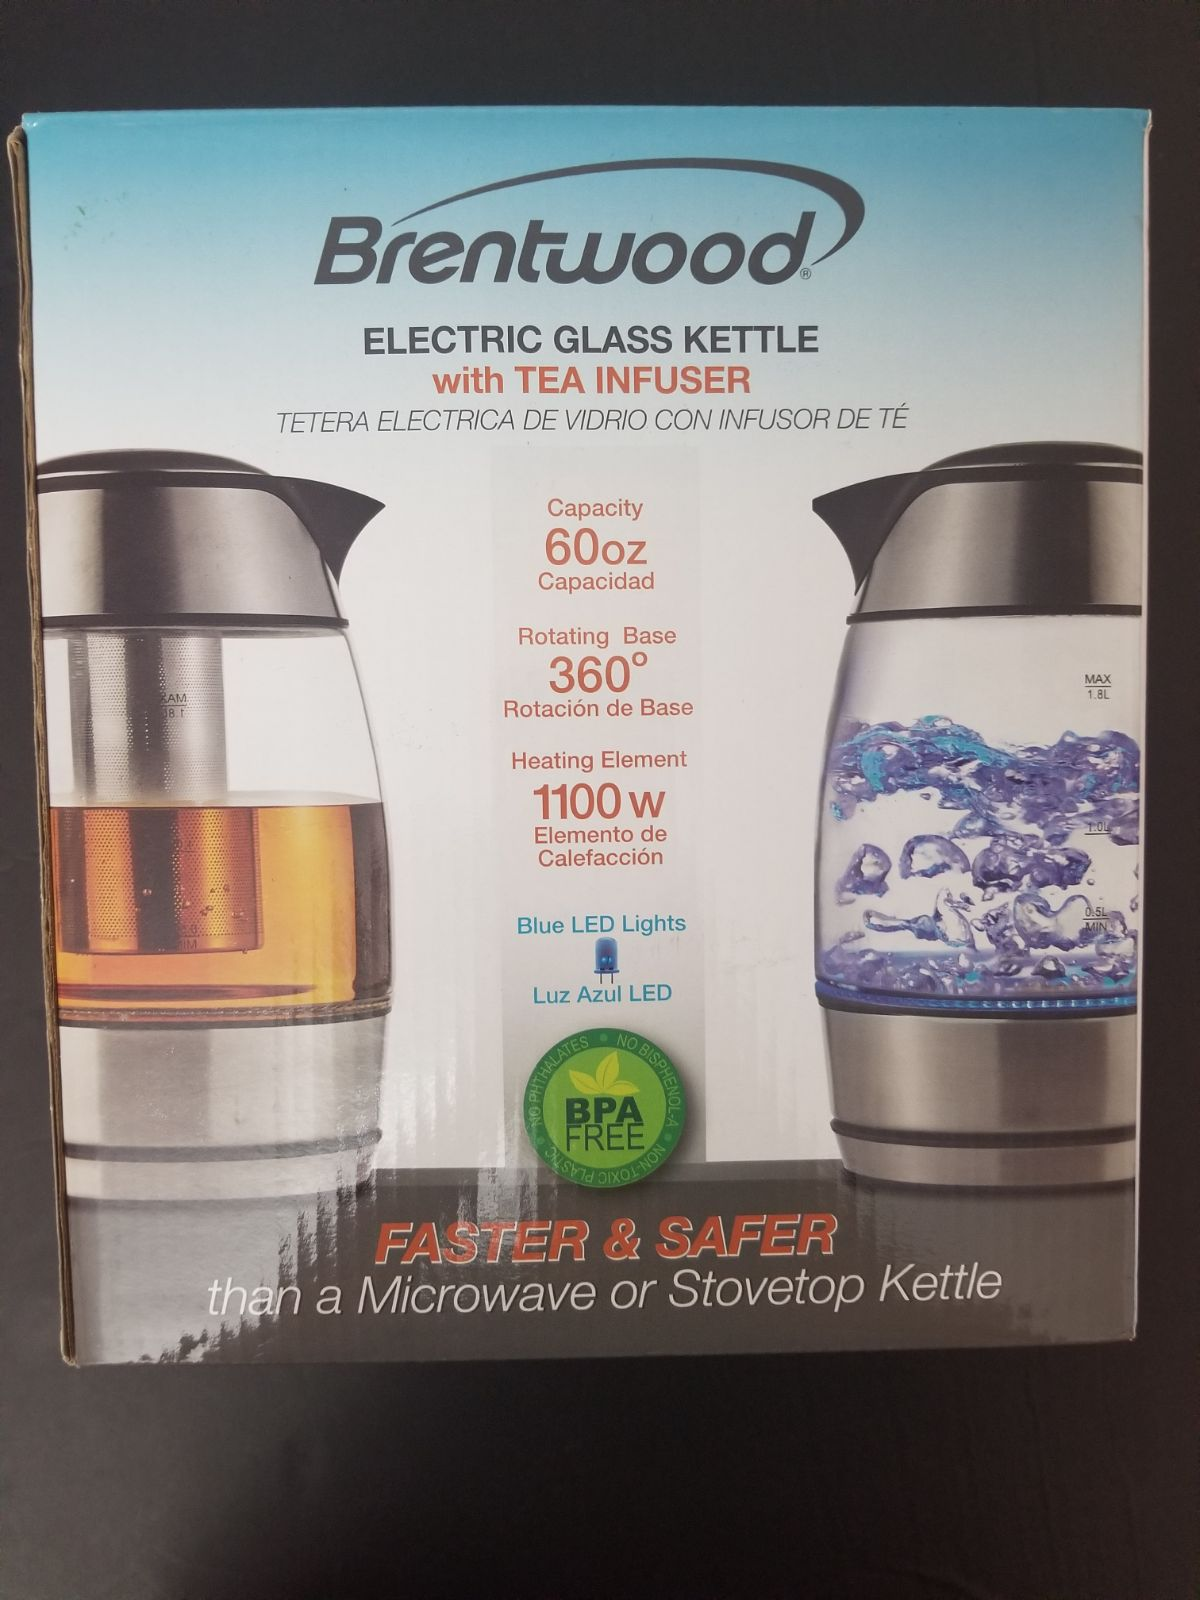 Brentwood Electric Glass Kettle